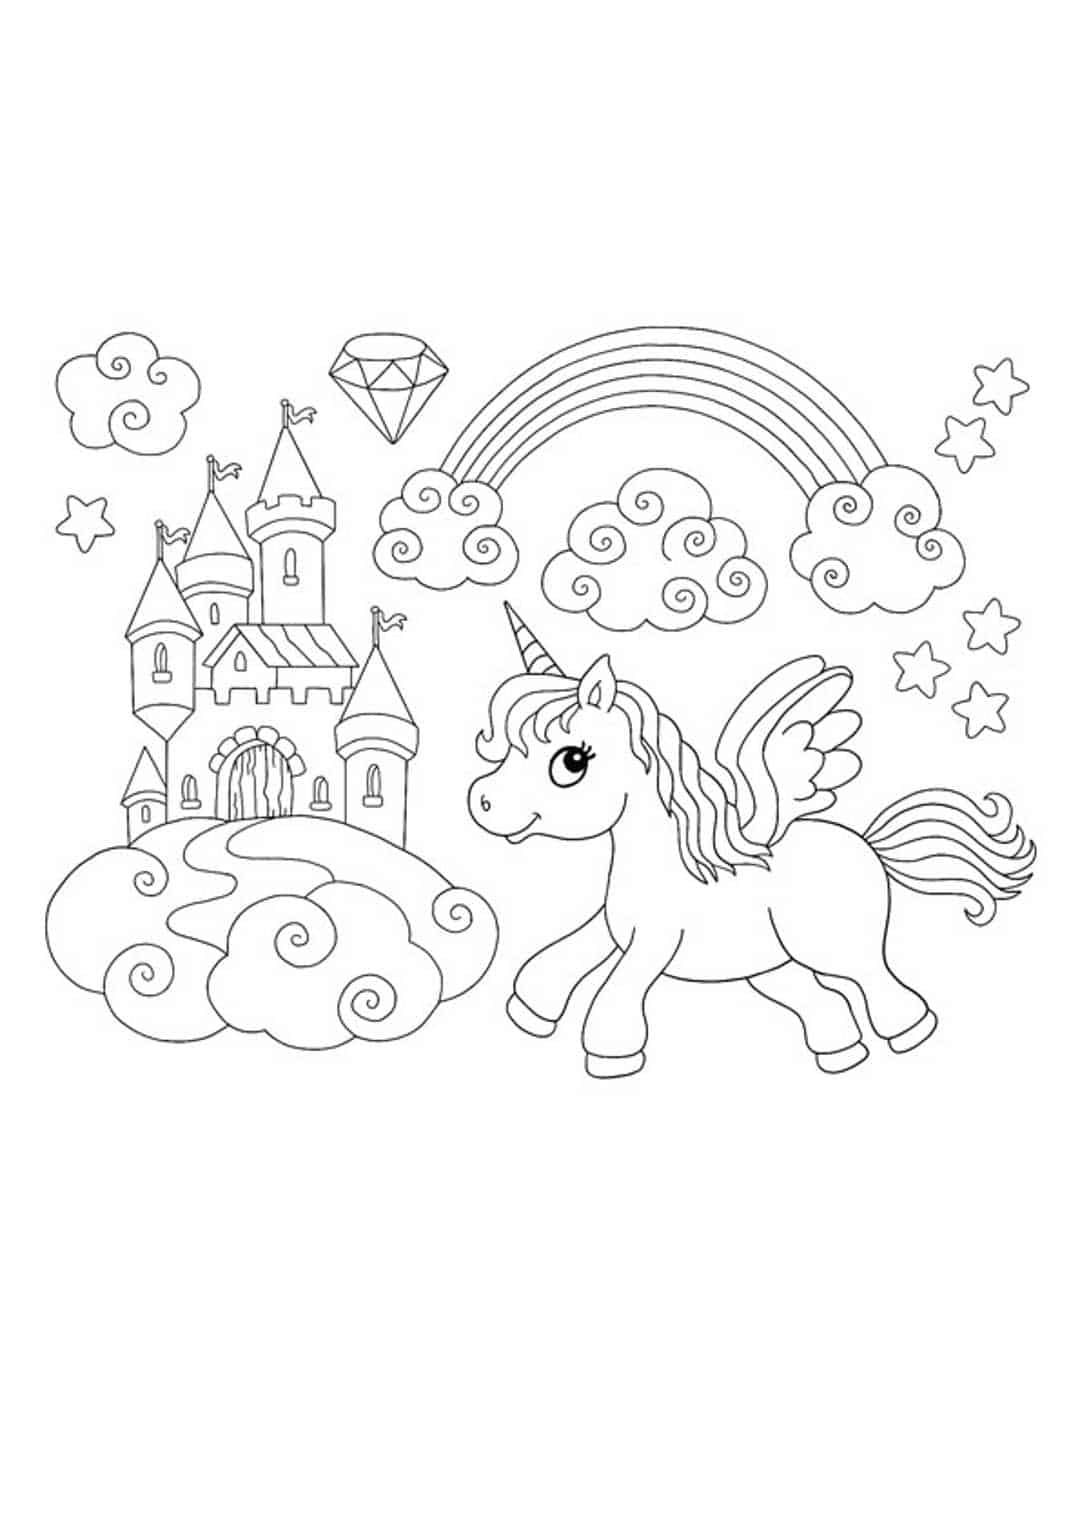 Flying Unicorn Coloring Pages - 11 Free Printable Coloring Sheets